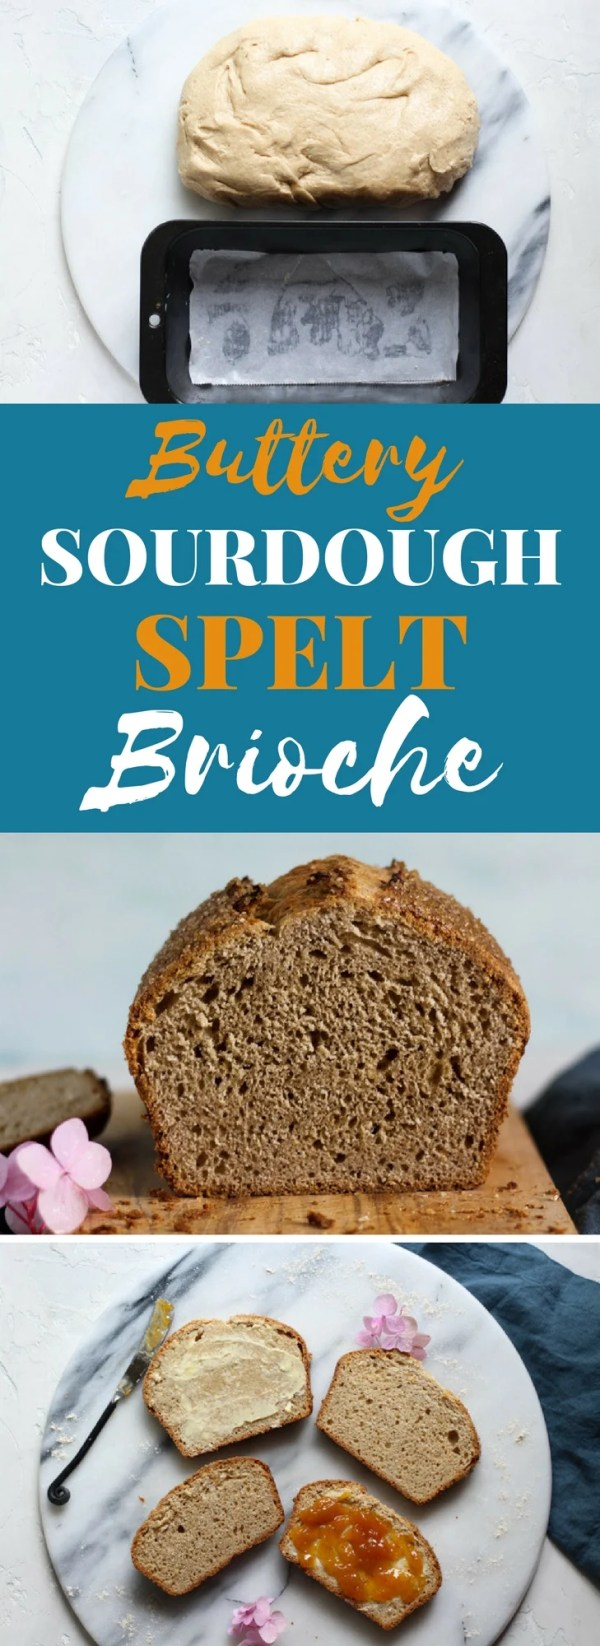 Buttery Sourdough Spelt Brioche Bread Recipe is food for the gods!